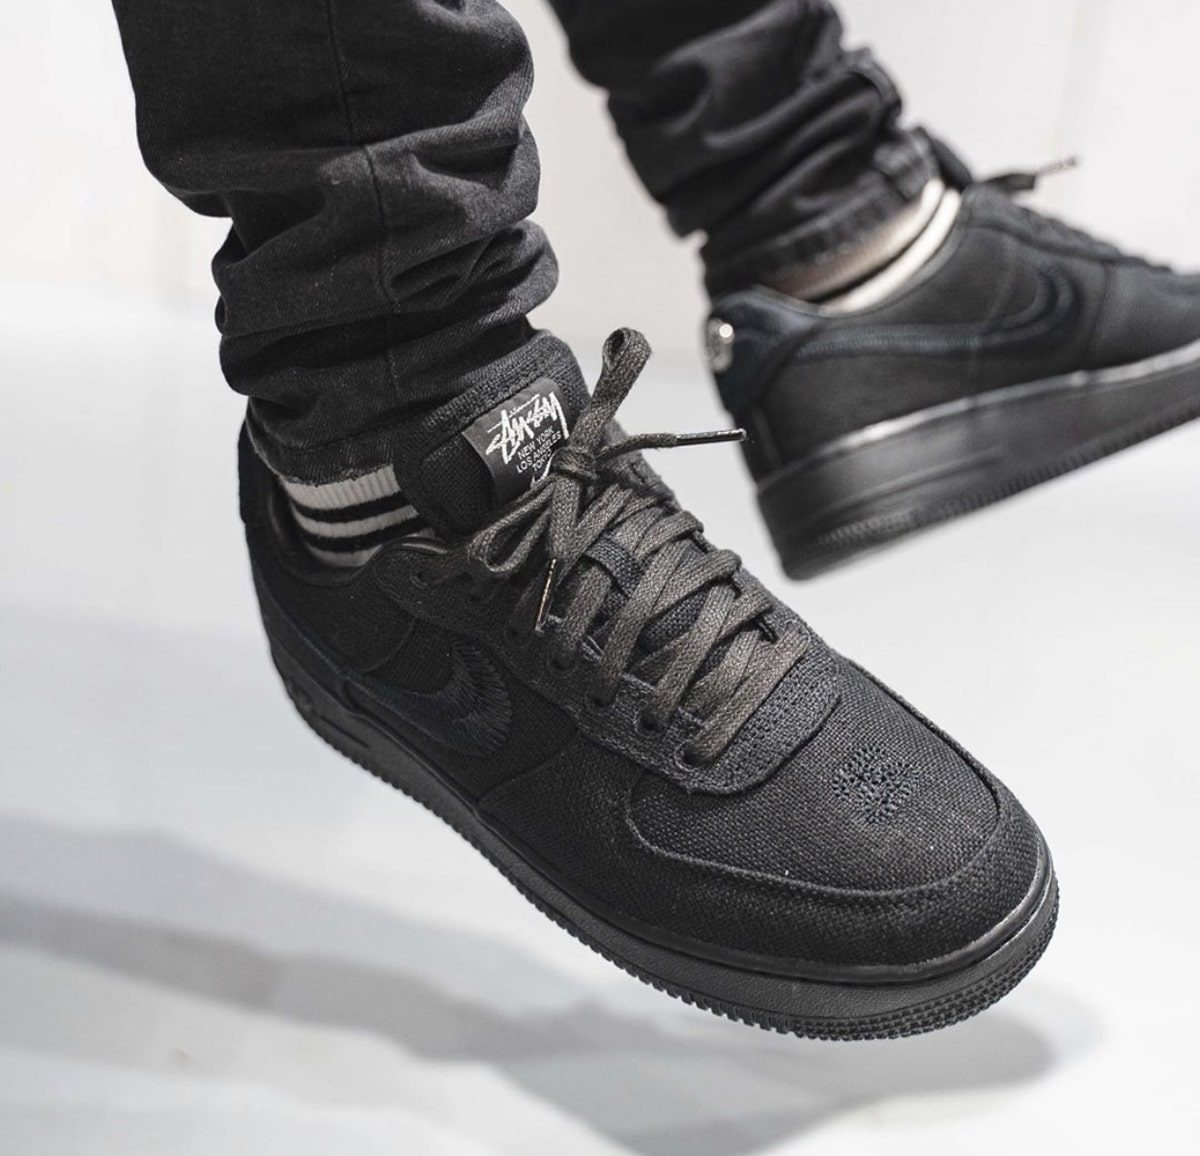 Stussy x Air Force 1 Collaboration